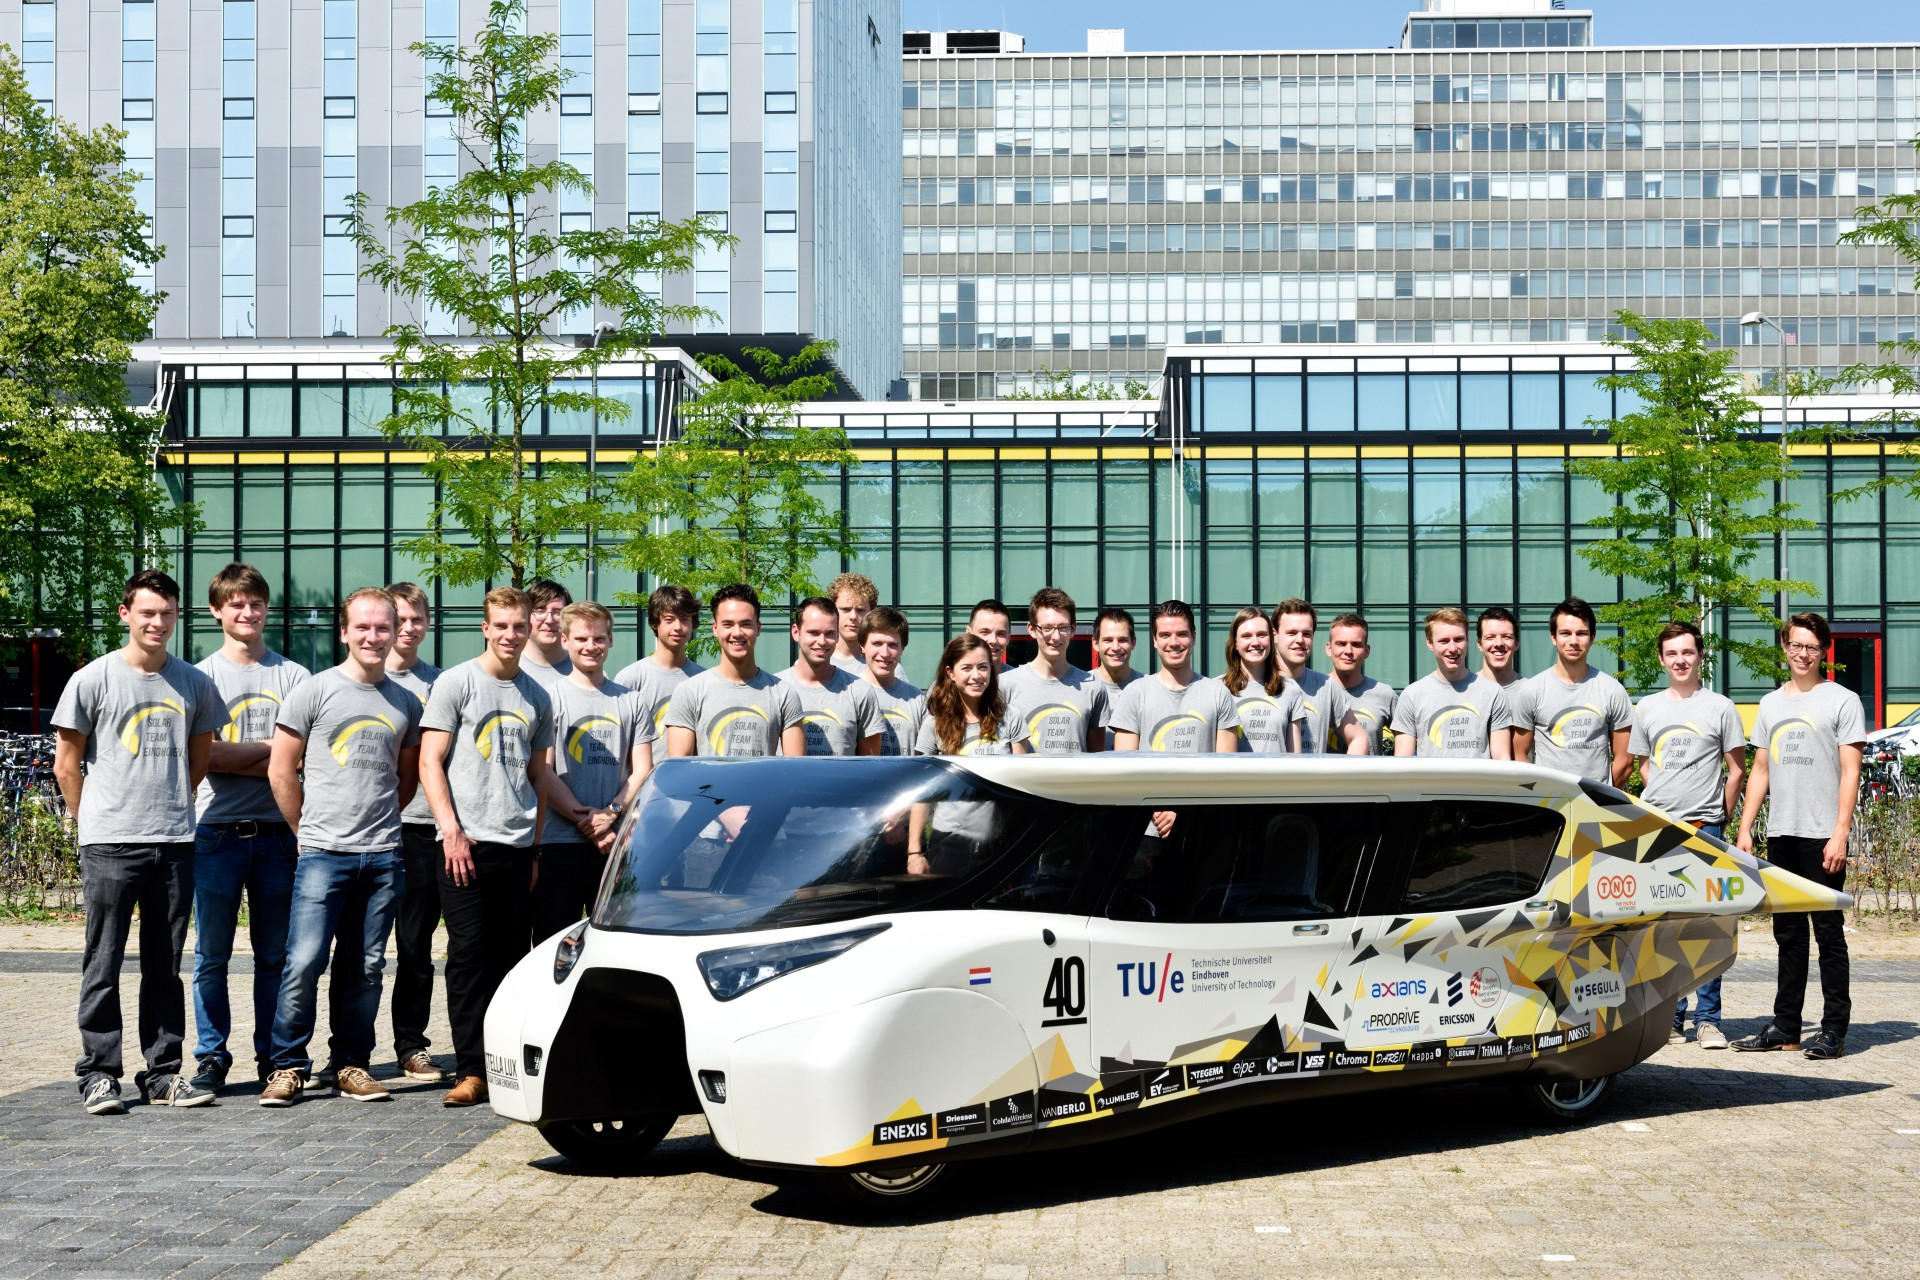 This Smart Solar-Powered Car Creates More Energy Than It Consumes